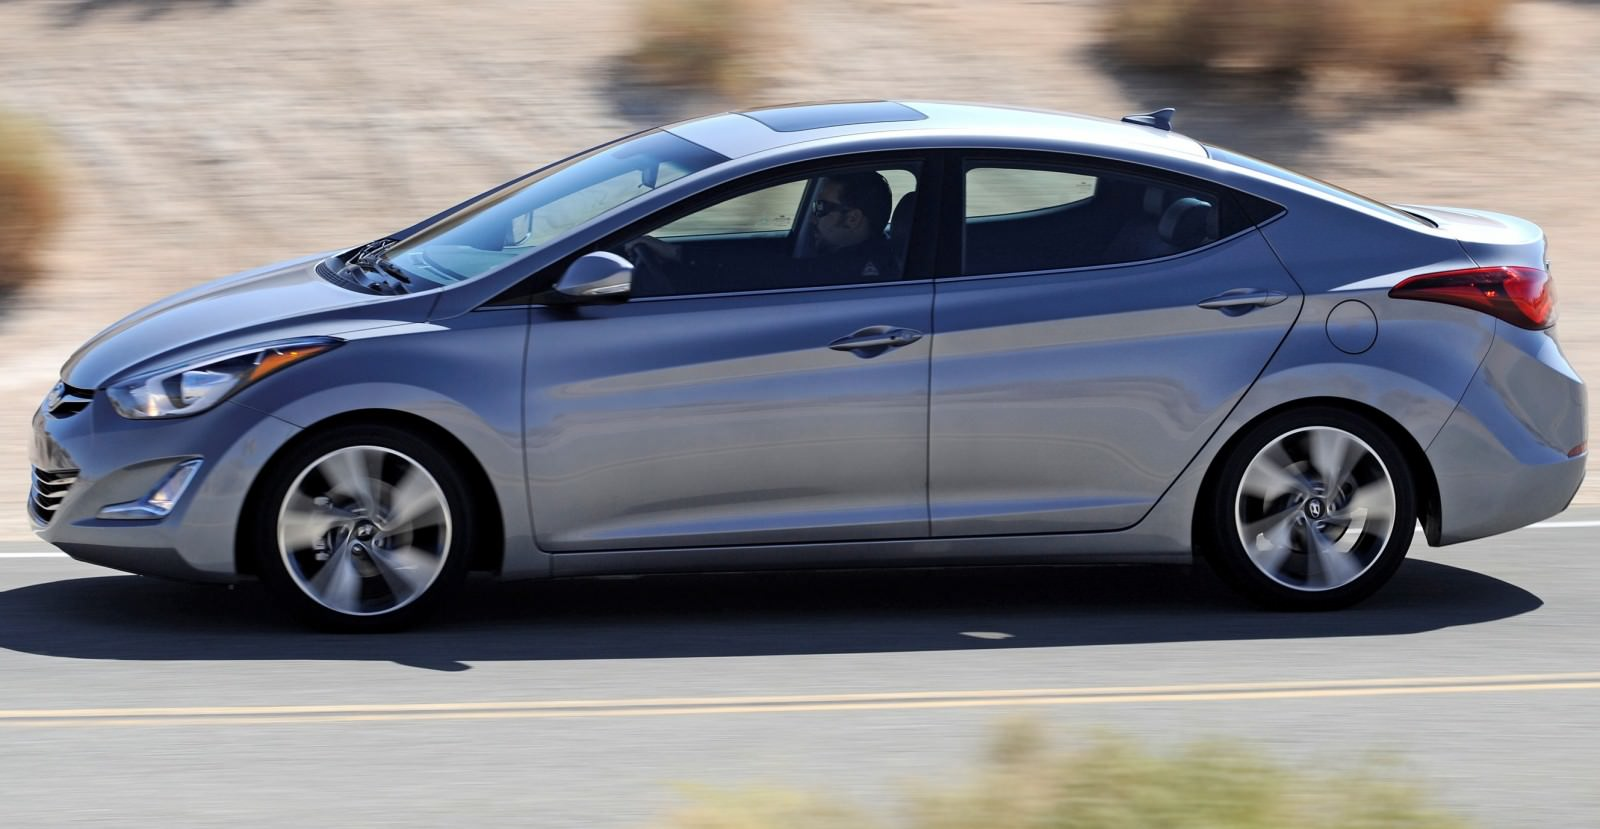 2015 Hyundai Elantra Sedan Brings Classy LED and Tech Updates  24